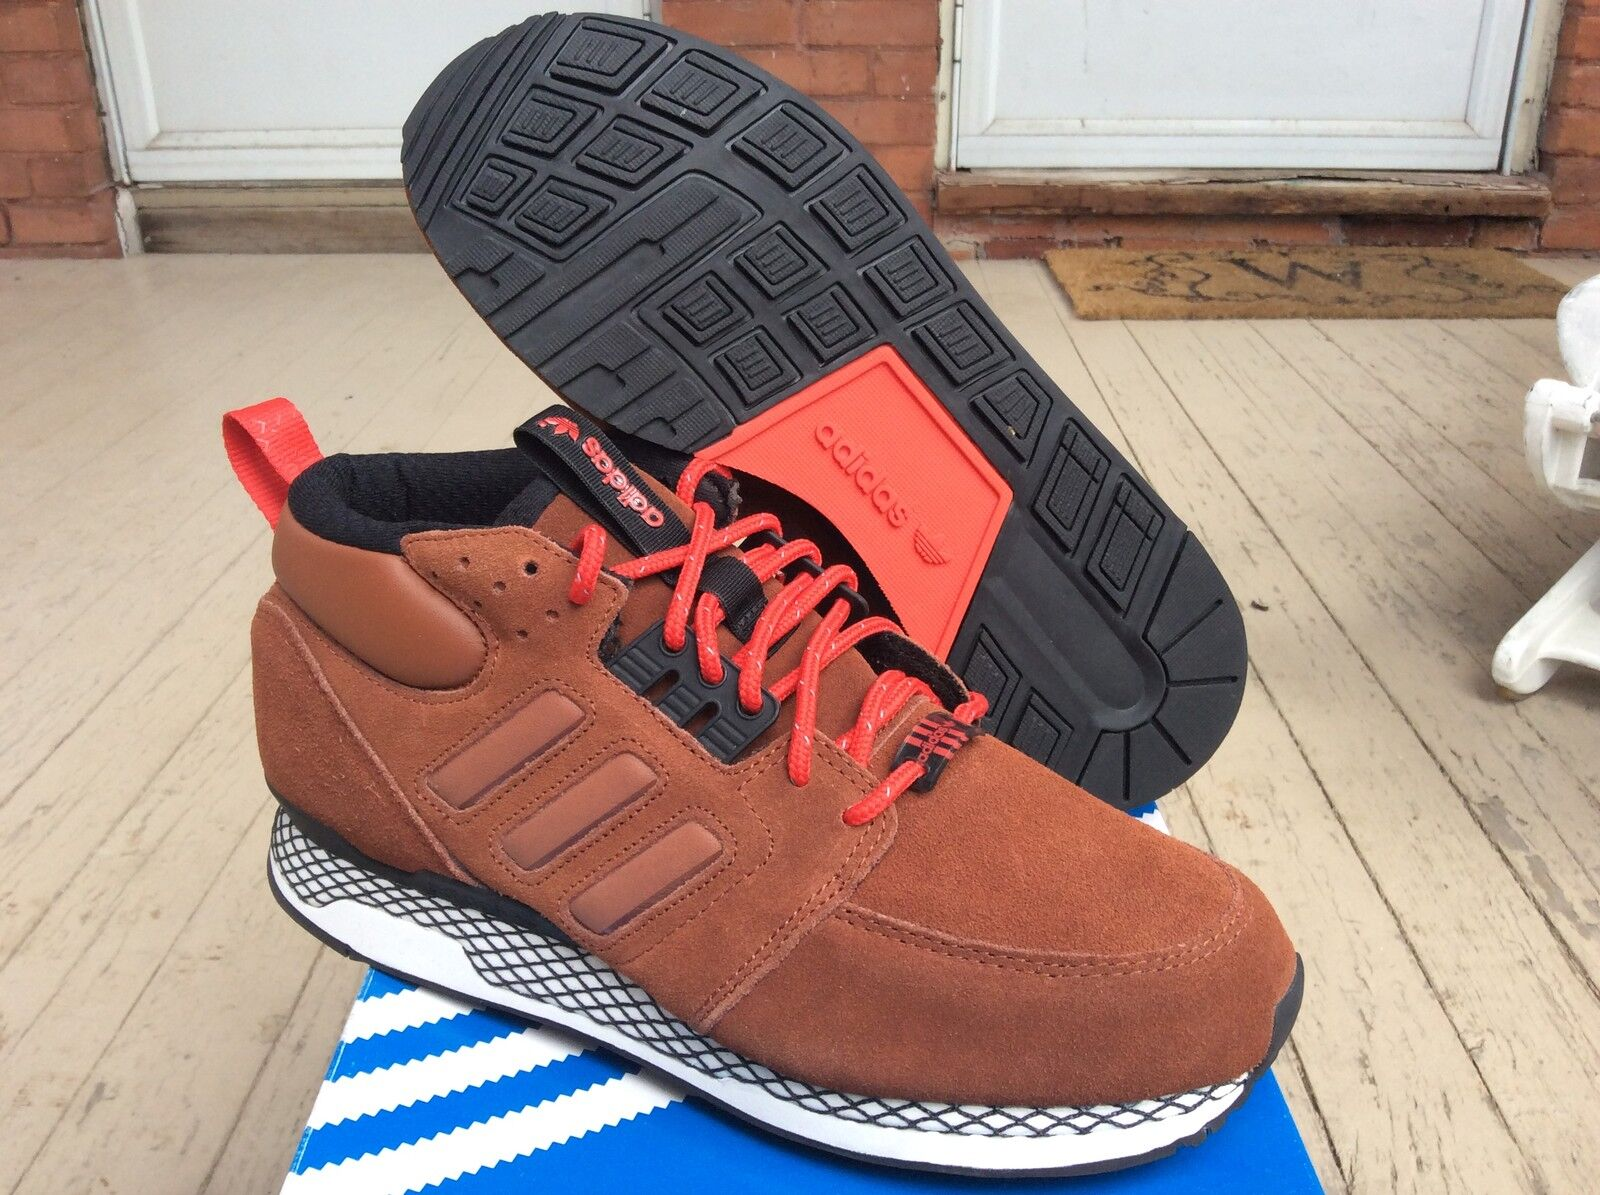 Adidas ZX Casual Mid Original size 9 Comfortable and good-looking